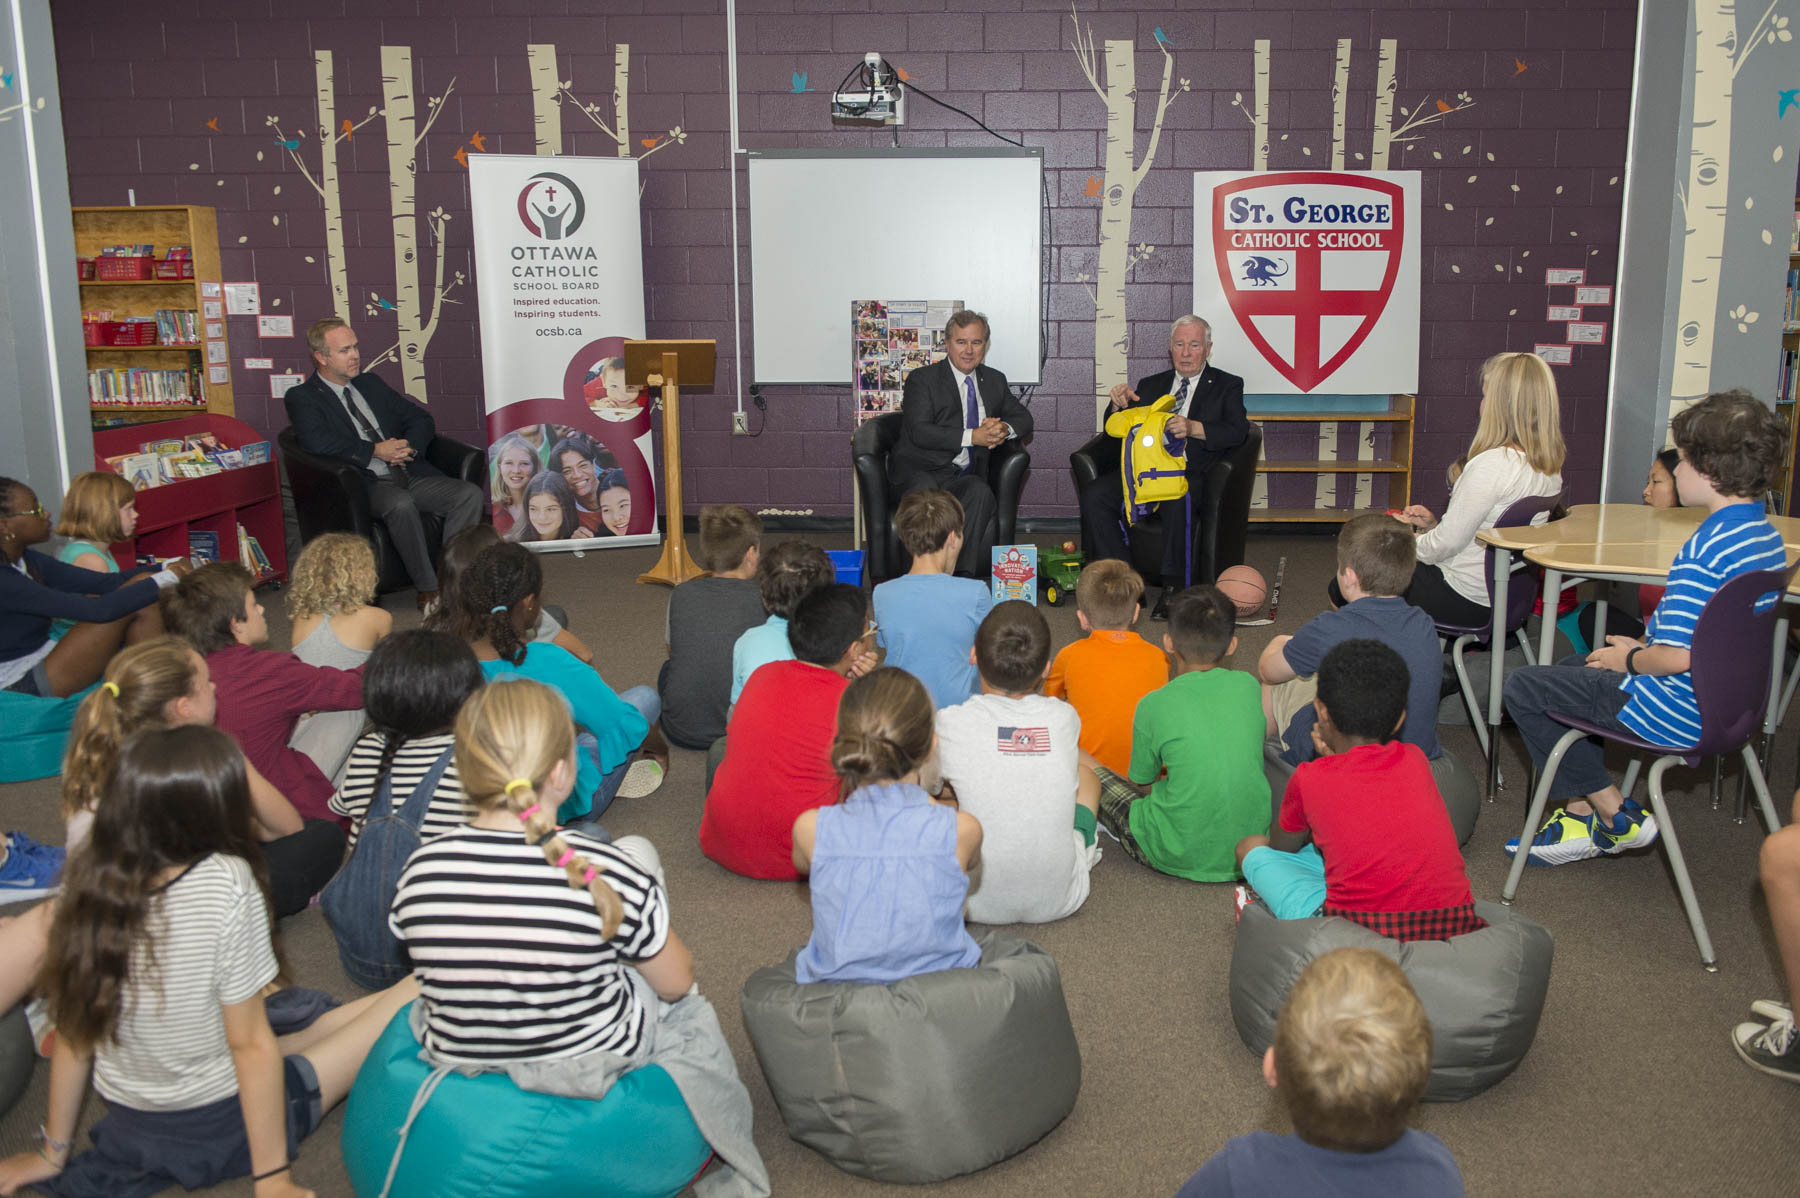 His Excellency the Right Honourable David Johnston, Governor General of Canada, and Mr. Tom Jenkins, Chair and former CEO of OpenText and Chair of the National Research Council, launched Innovation Nation and Ingénieux Junior, the young readers' edition of their popular book Ingenious, at St. George School, in Ottawa, on Monday, September 18, 2017.